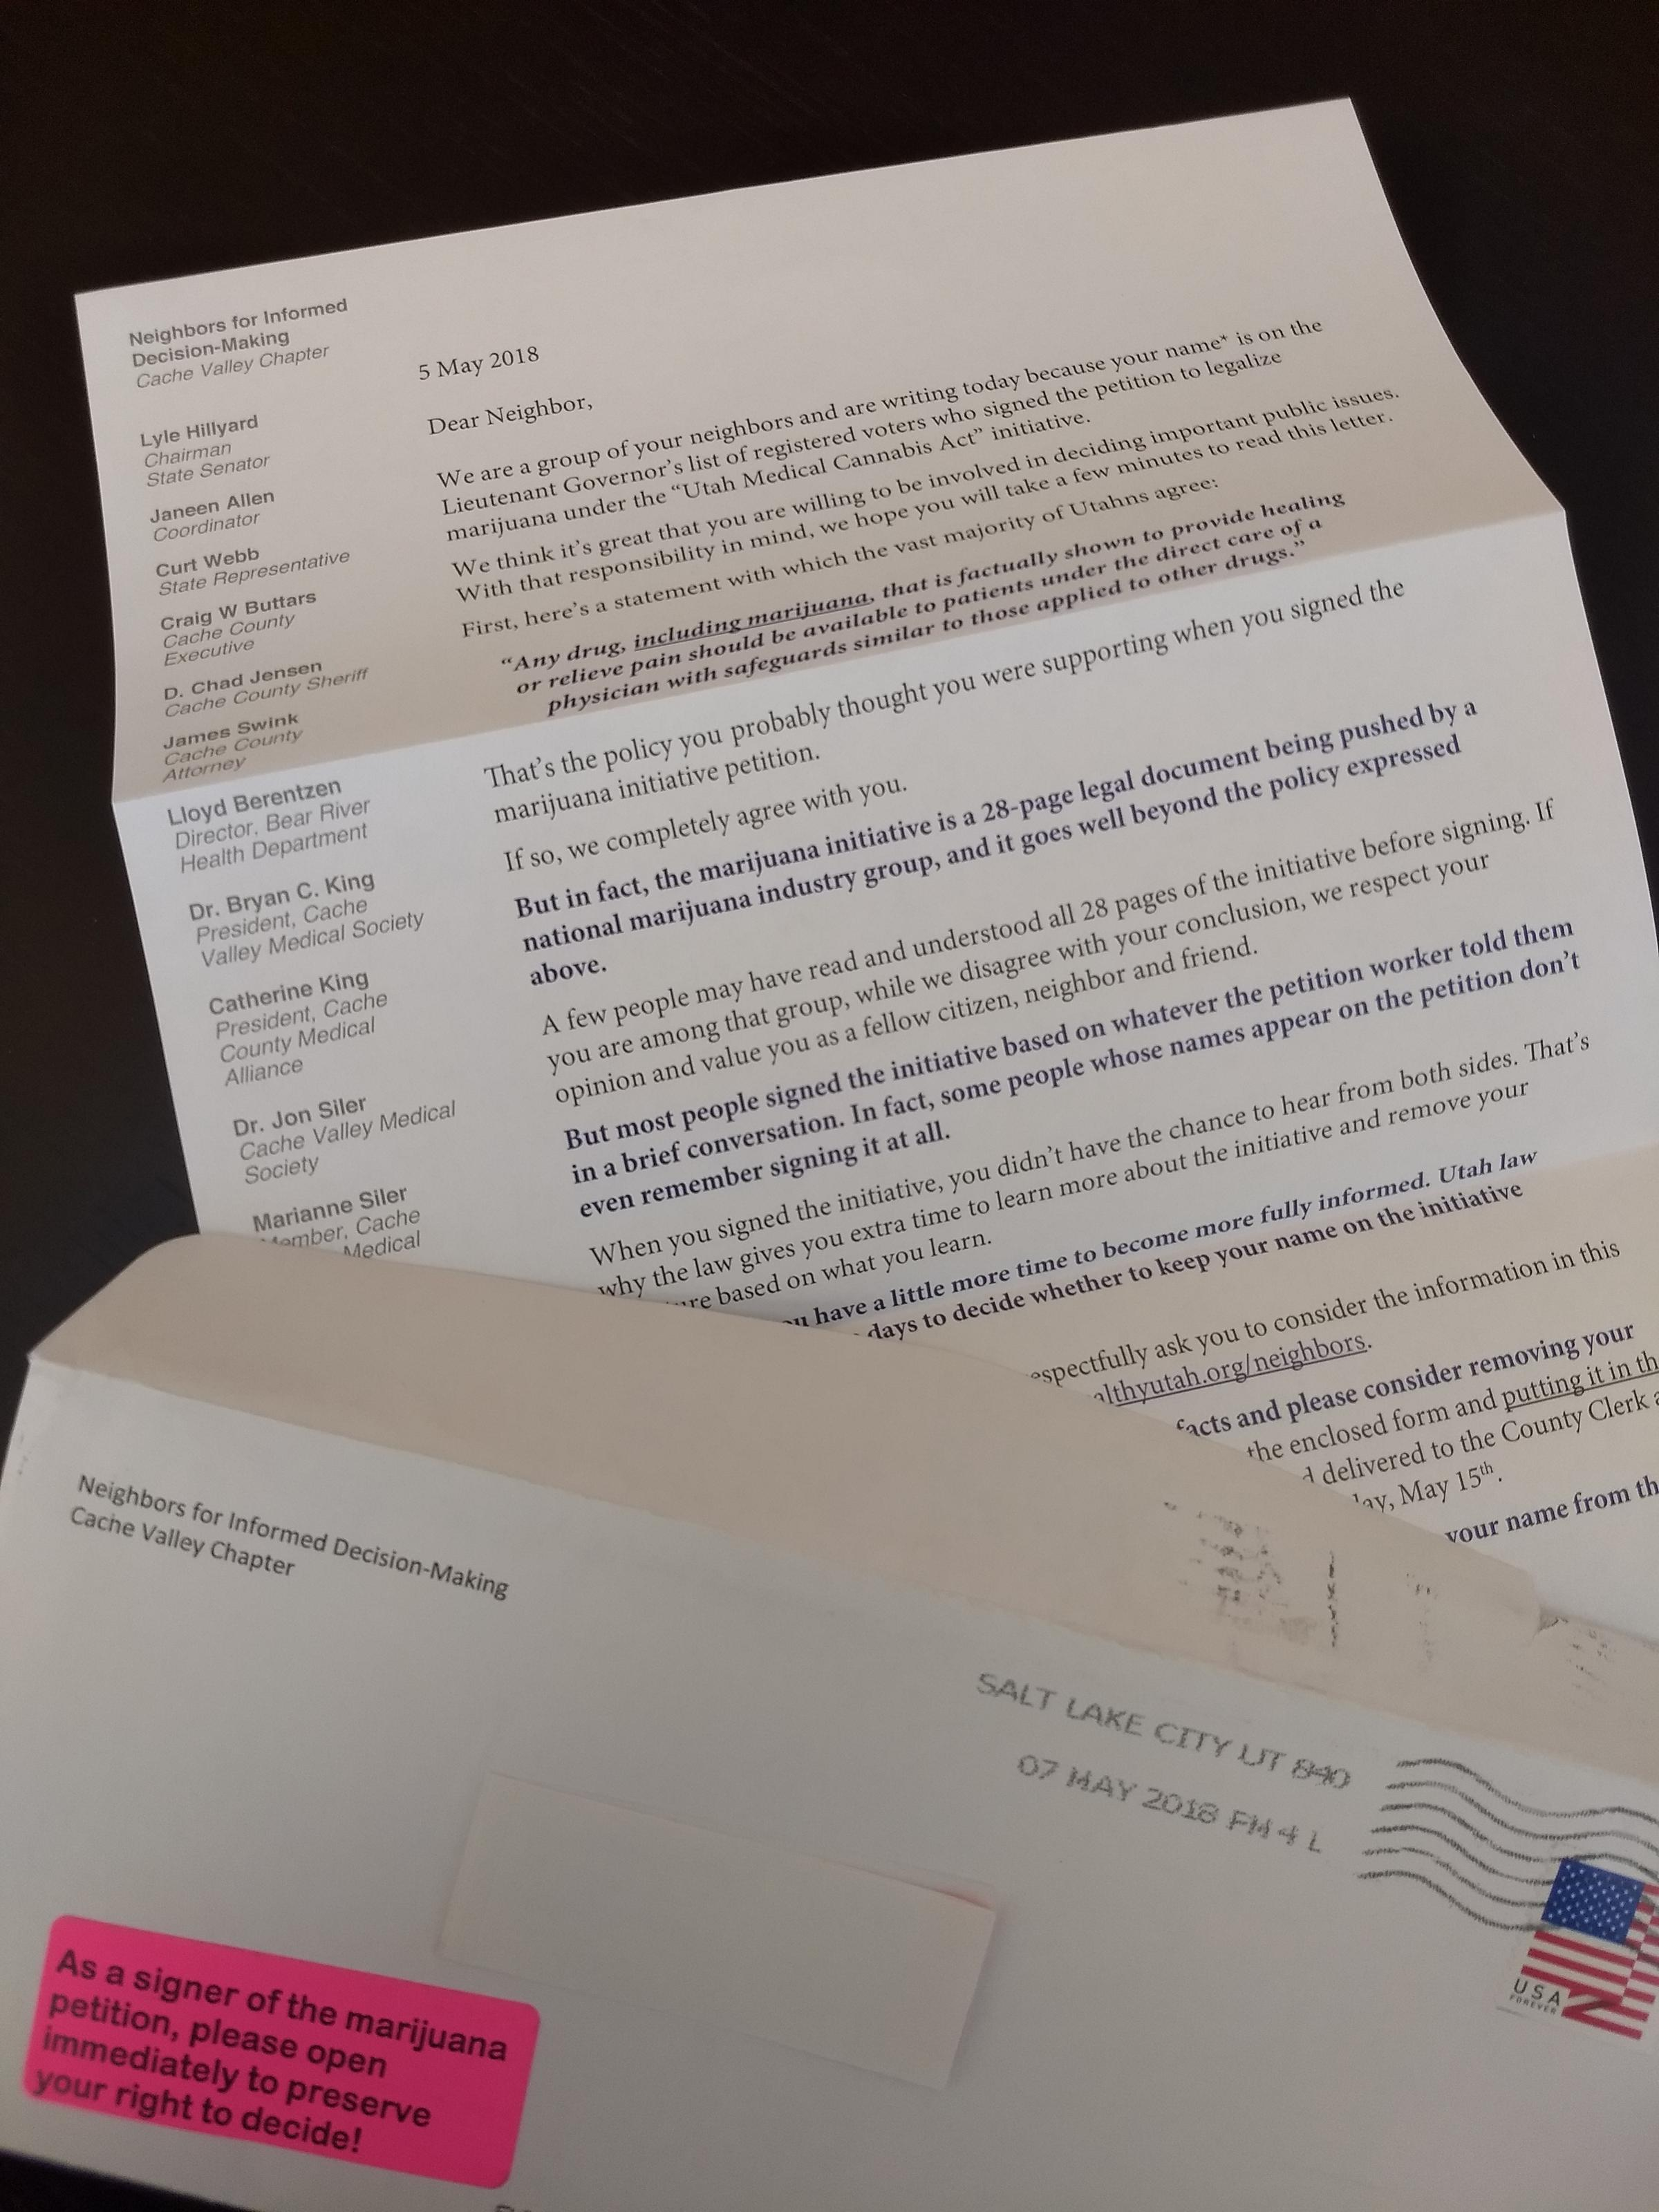 Ballot Initiative Letter Campaign Being Reviewed By Lt  Governor's